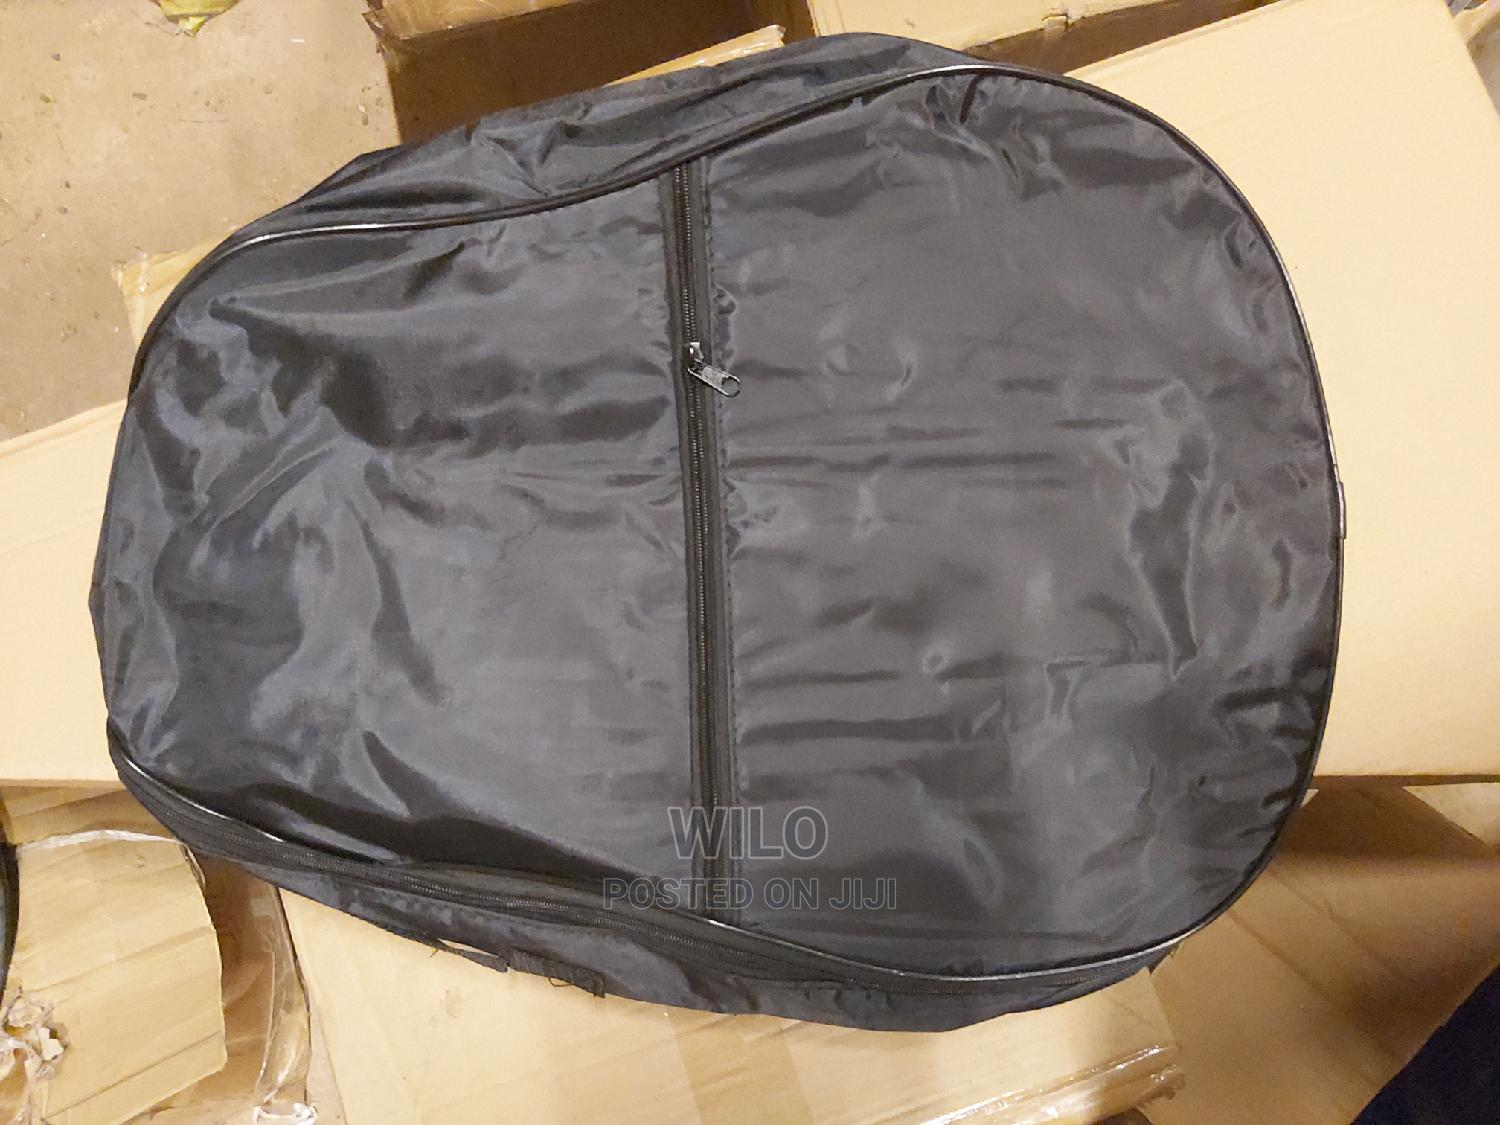 Guitar Bag for 41 | Musical Instruments & Gear for sale in Nairobi Central, Nairobi, Kenya